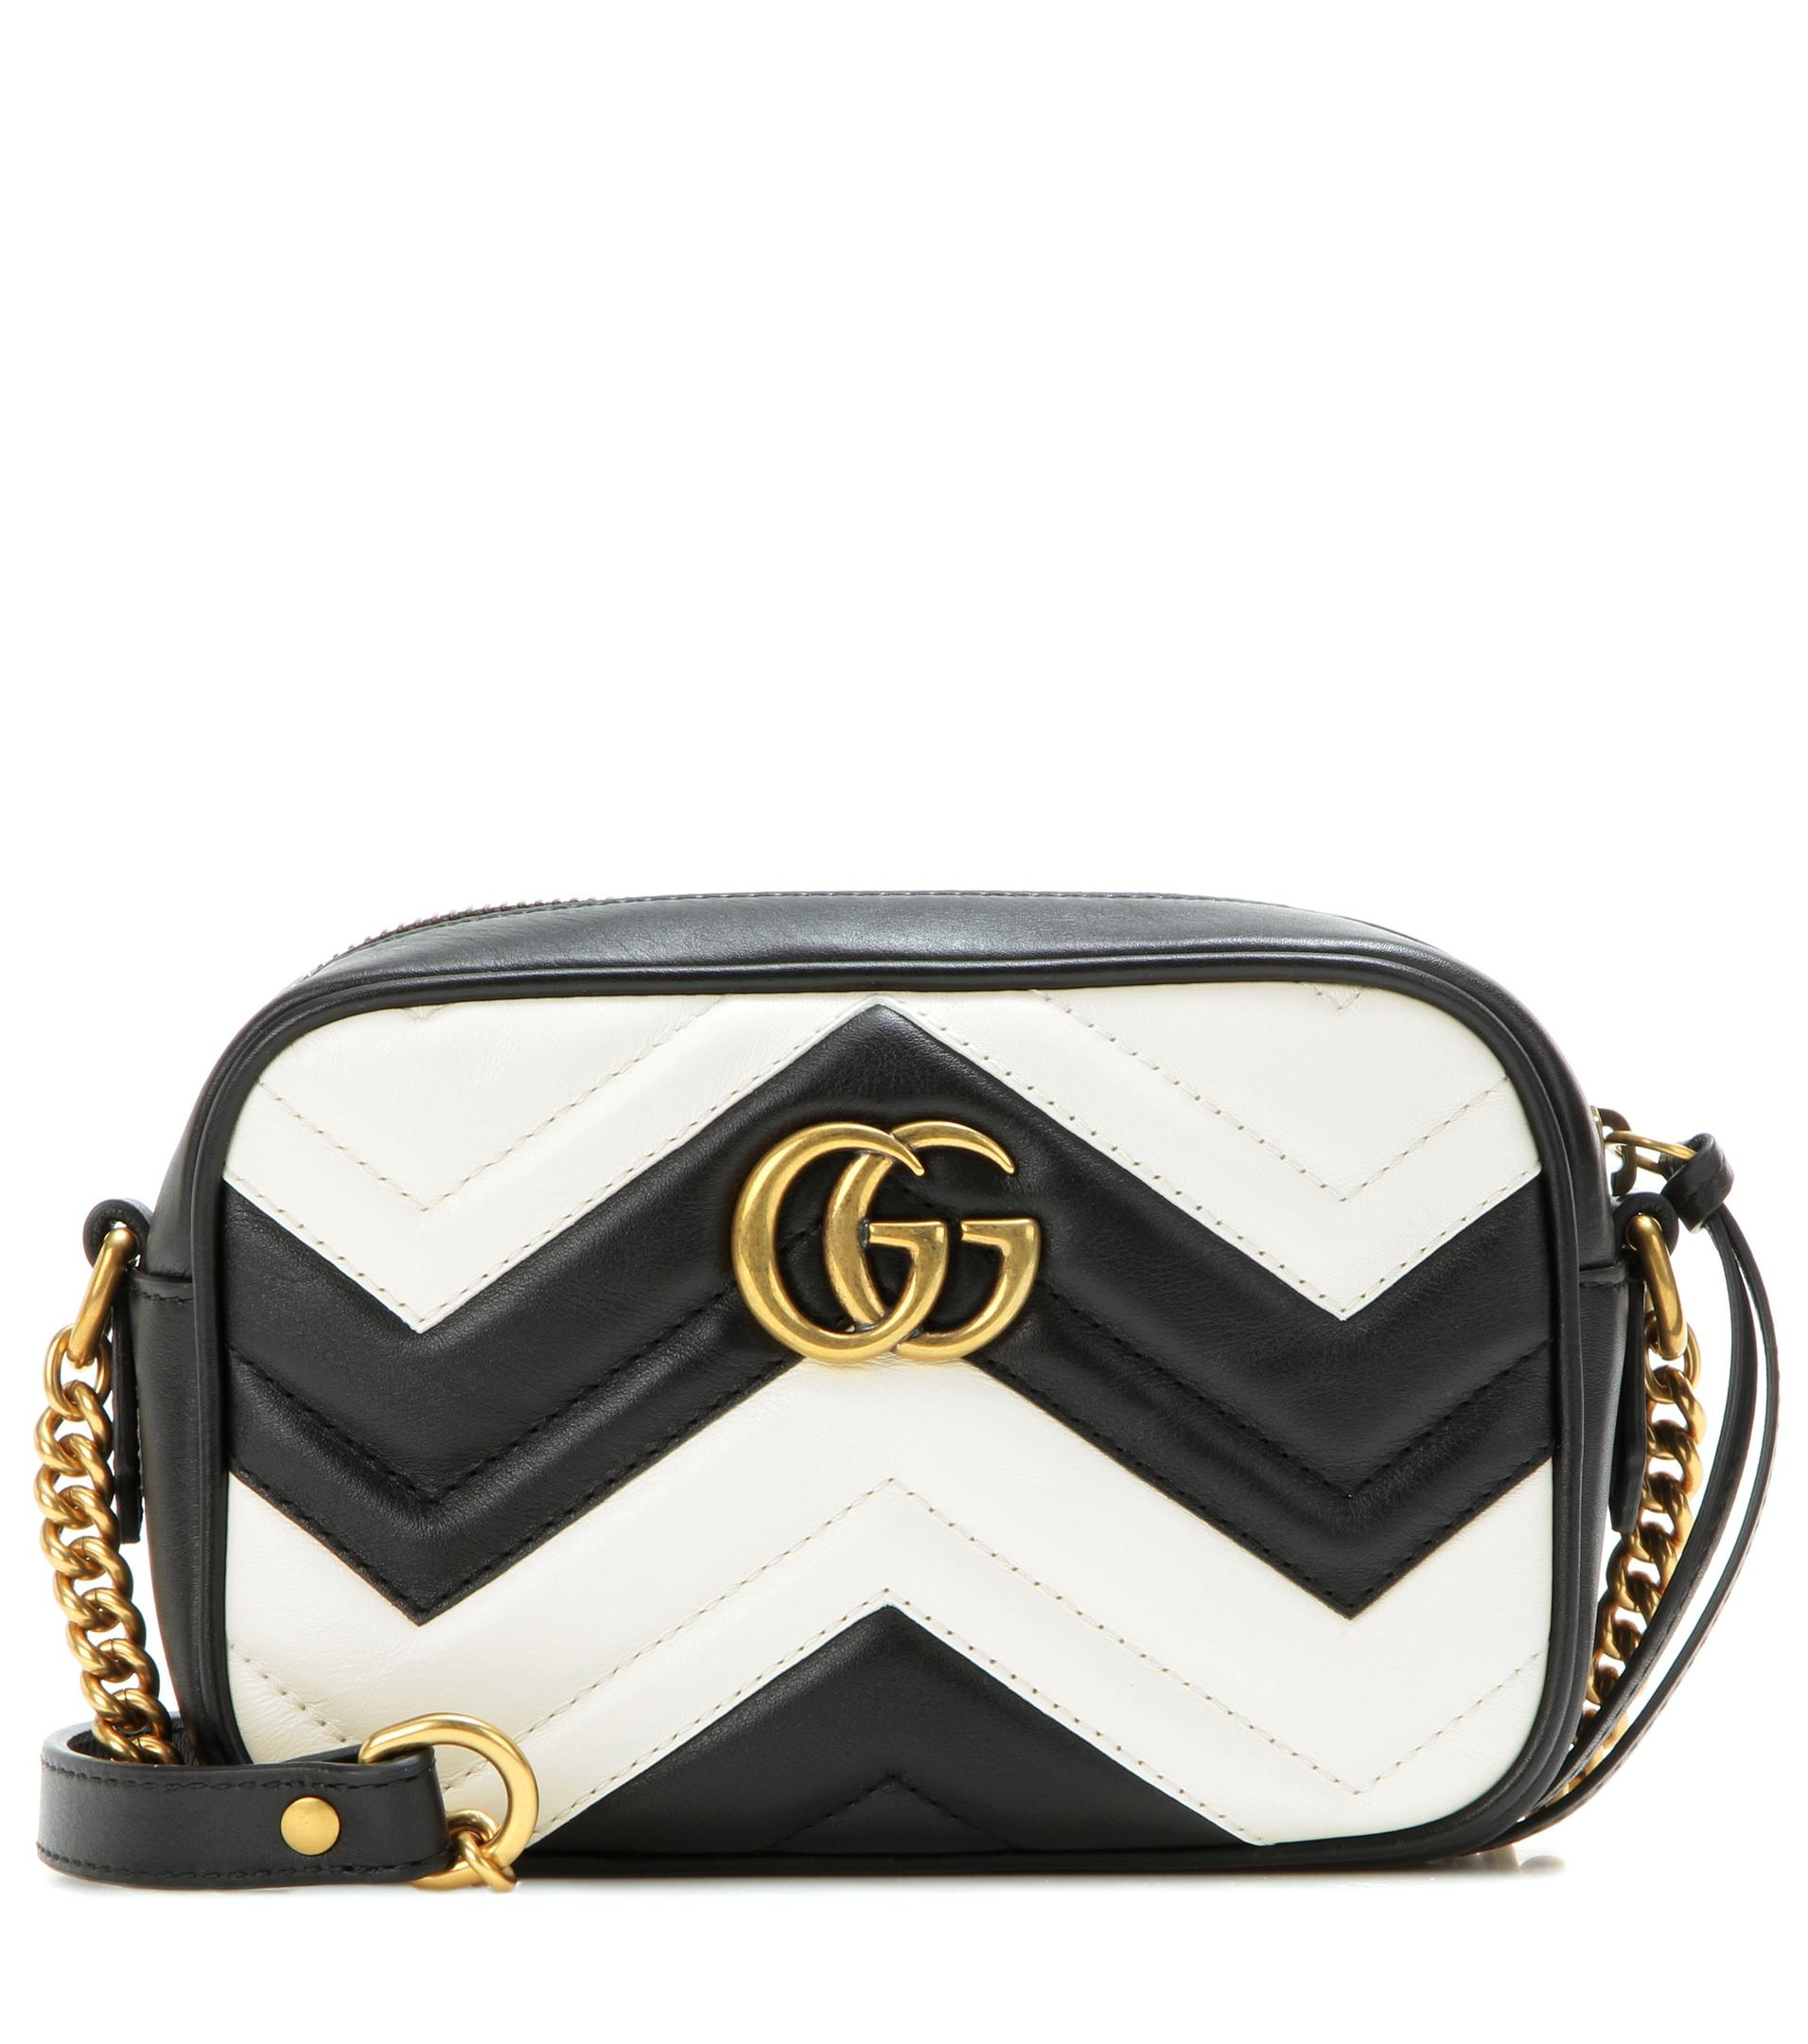 52feae20f44 Gucci Marmont Gg Mini Quilted Black Leather Cross Body Bag 488426 Black